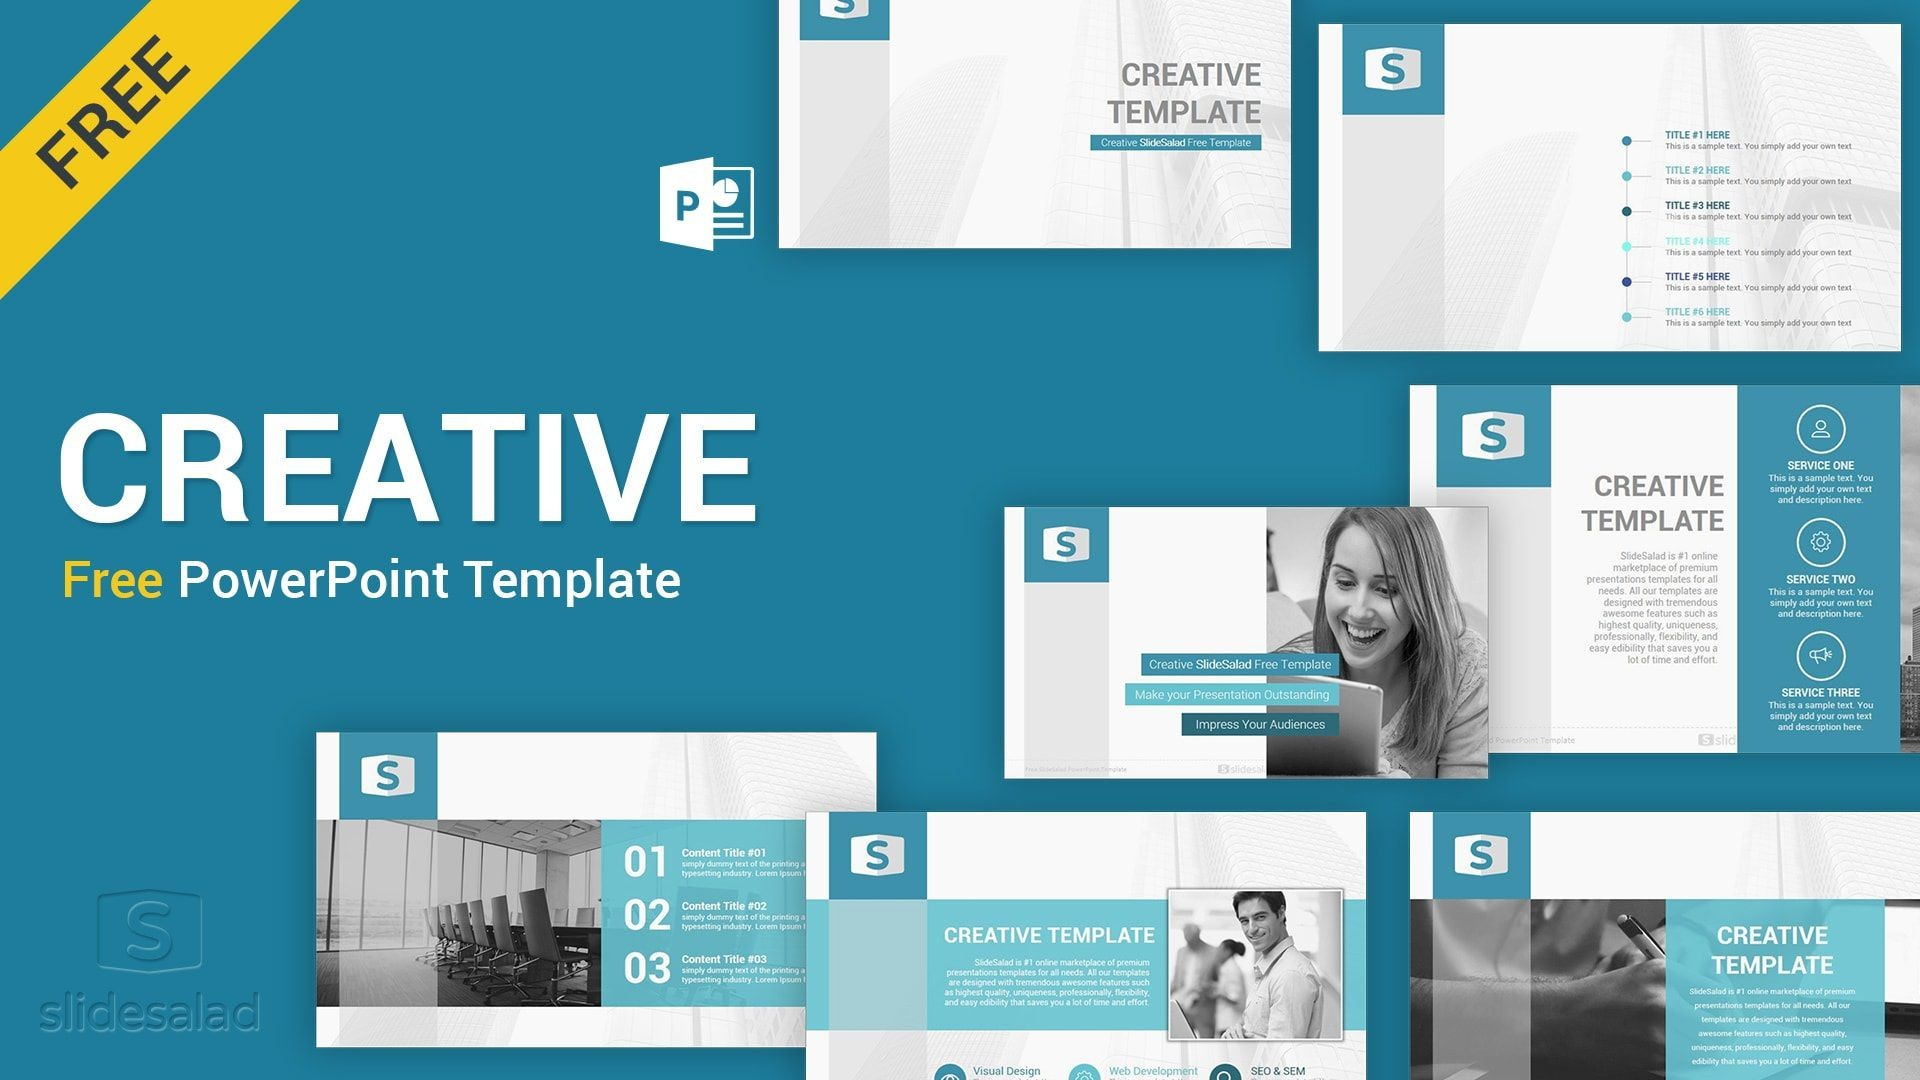 005 Beautiful Free Download Ppt Template For Technical Presentation Idea  Simple Project Sample1920